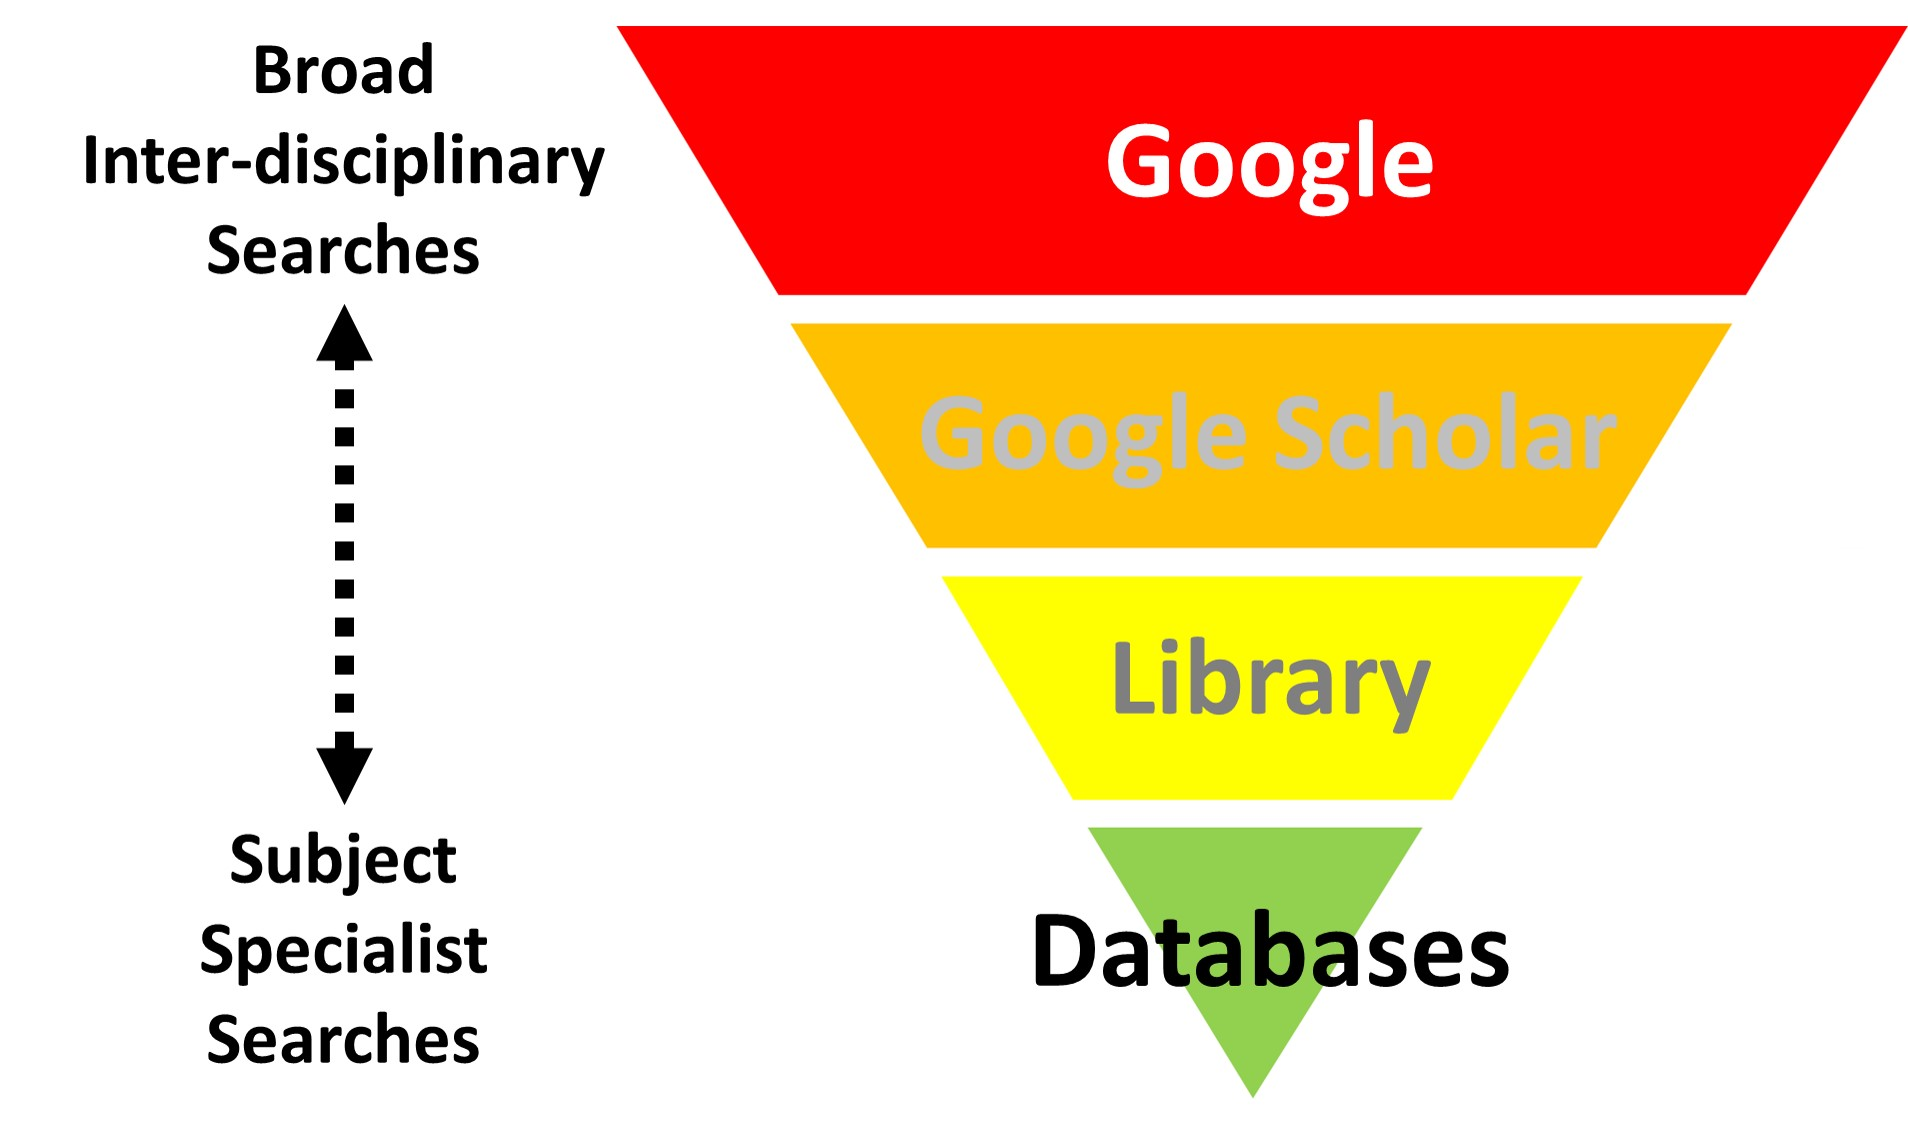 Hierarchy of Uses for Web Search Engines Versus Library Databases